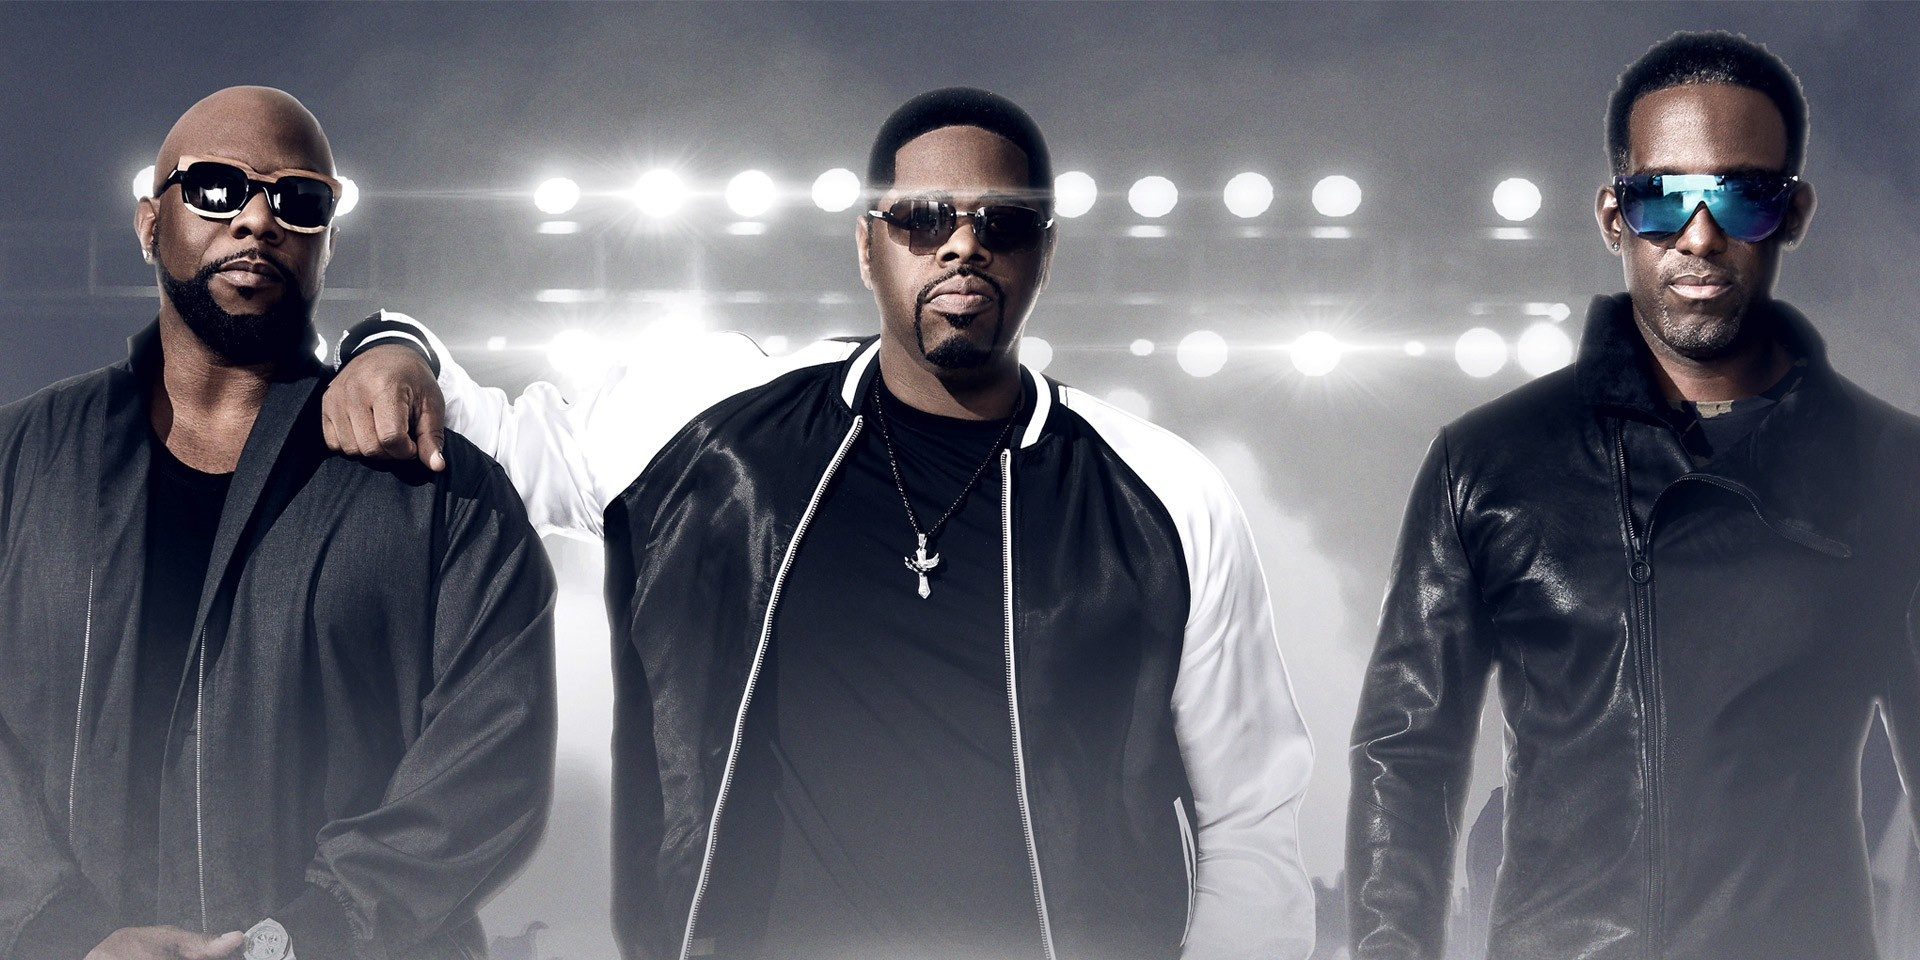 Boyz II Men to perform with KZ Tandingan, Yeng Constantino, Kyla, Angeline Quinto in Manila